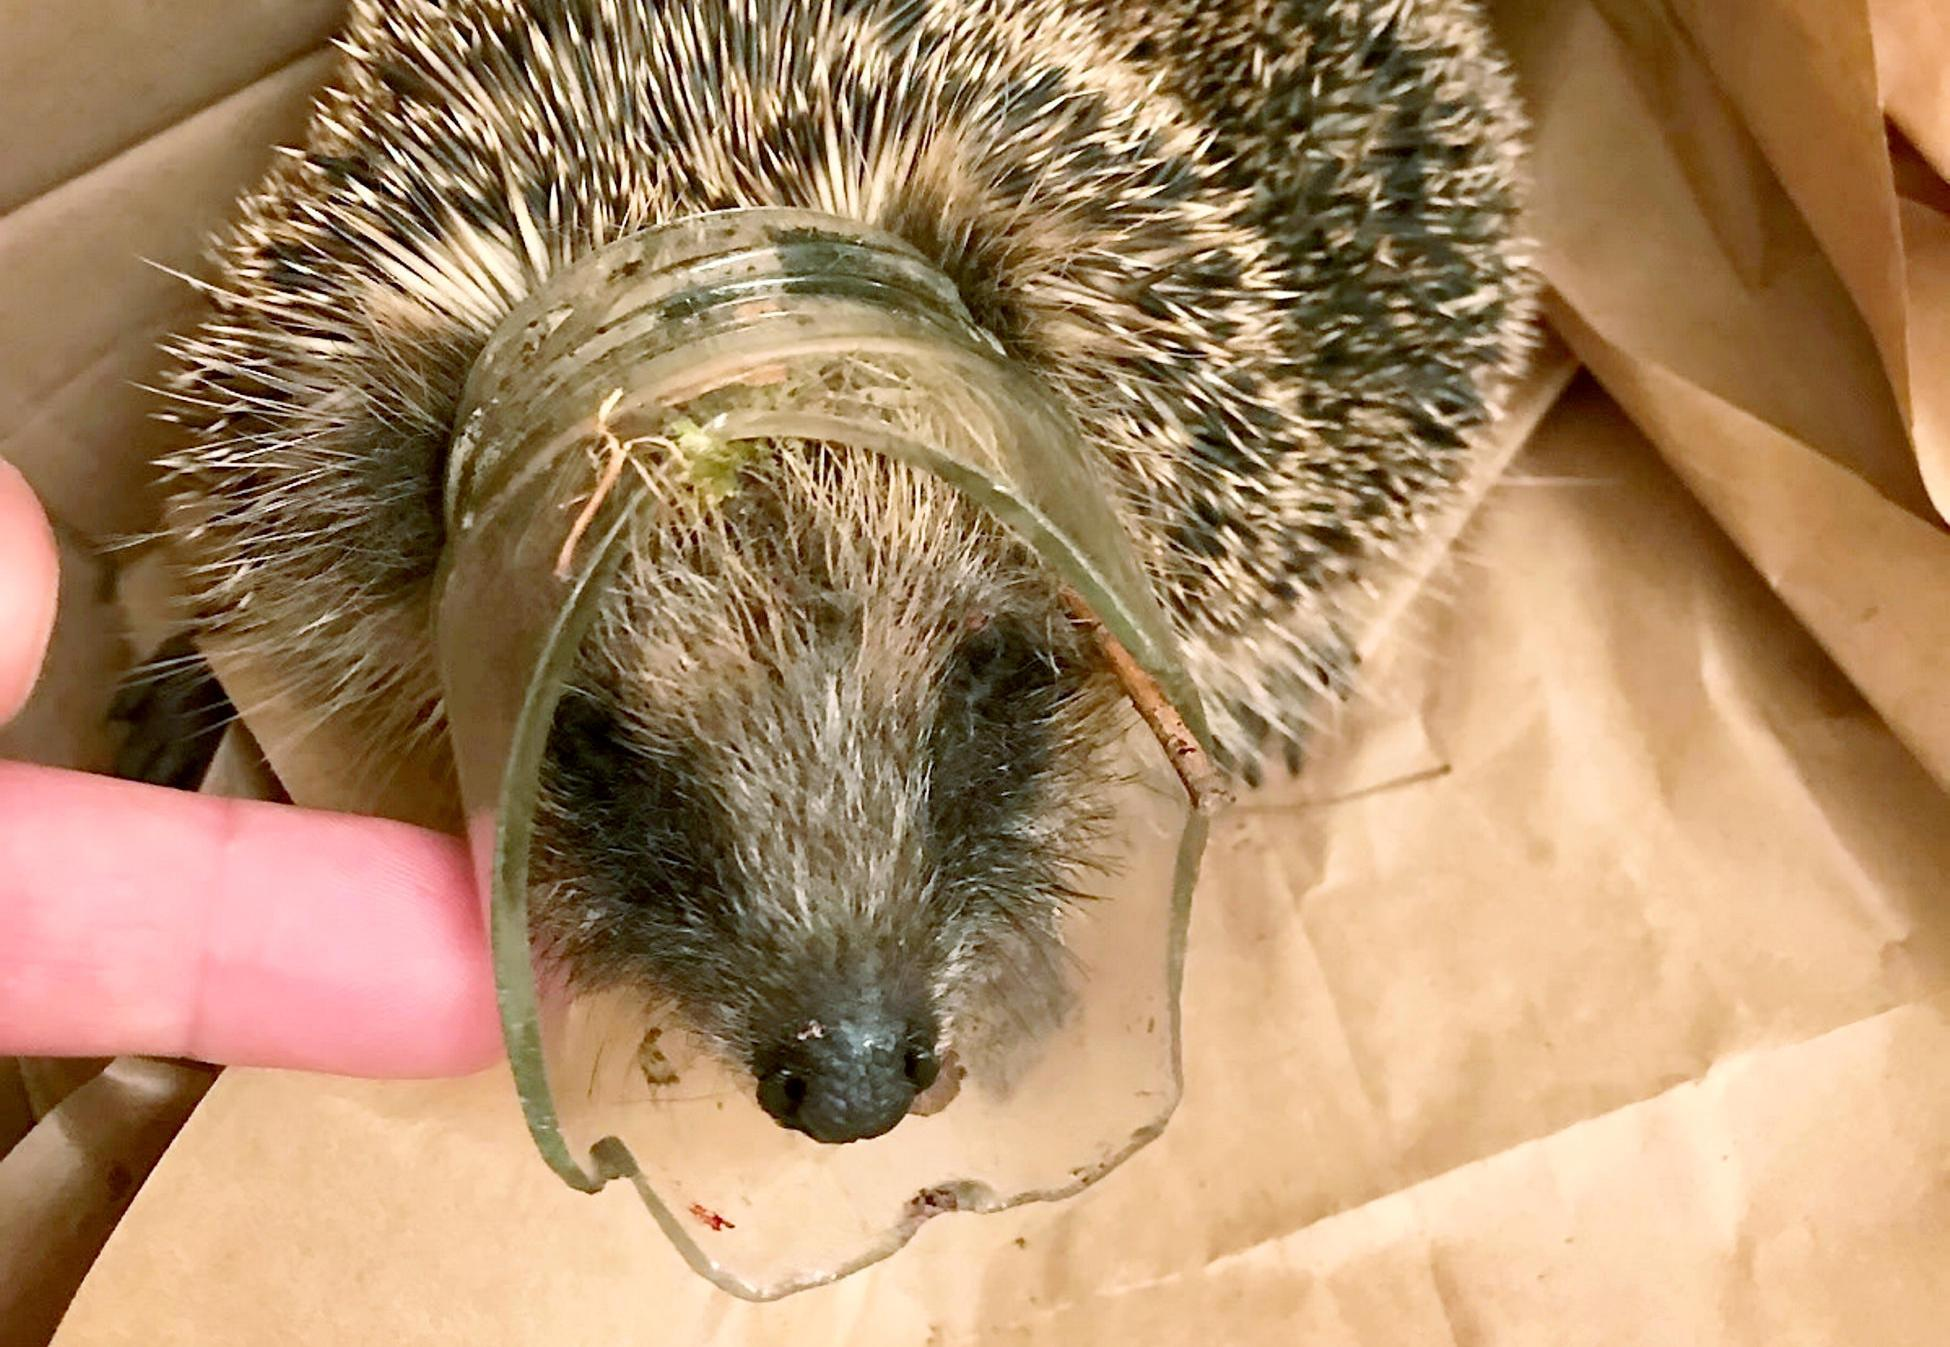 That's a pretty tricky situation! Hedgehog is lucky after being stuck in broken glass